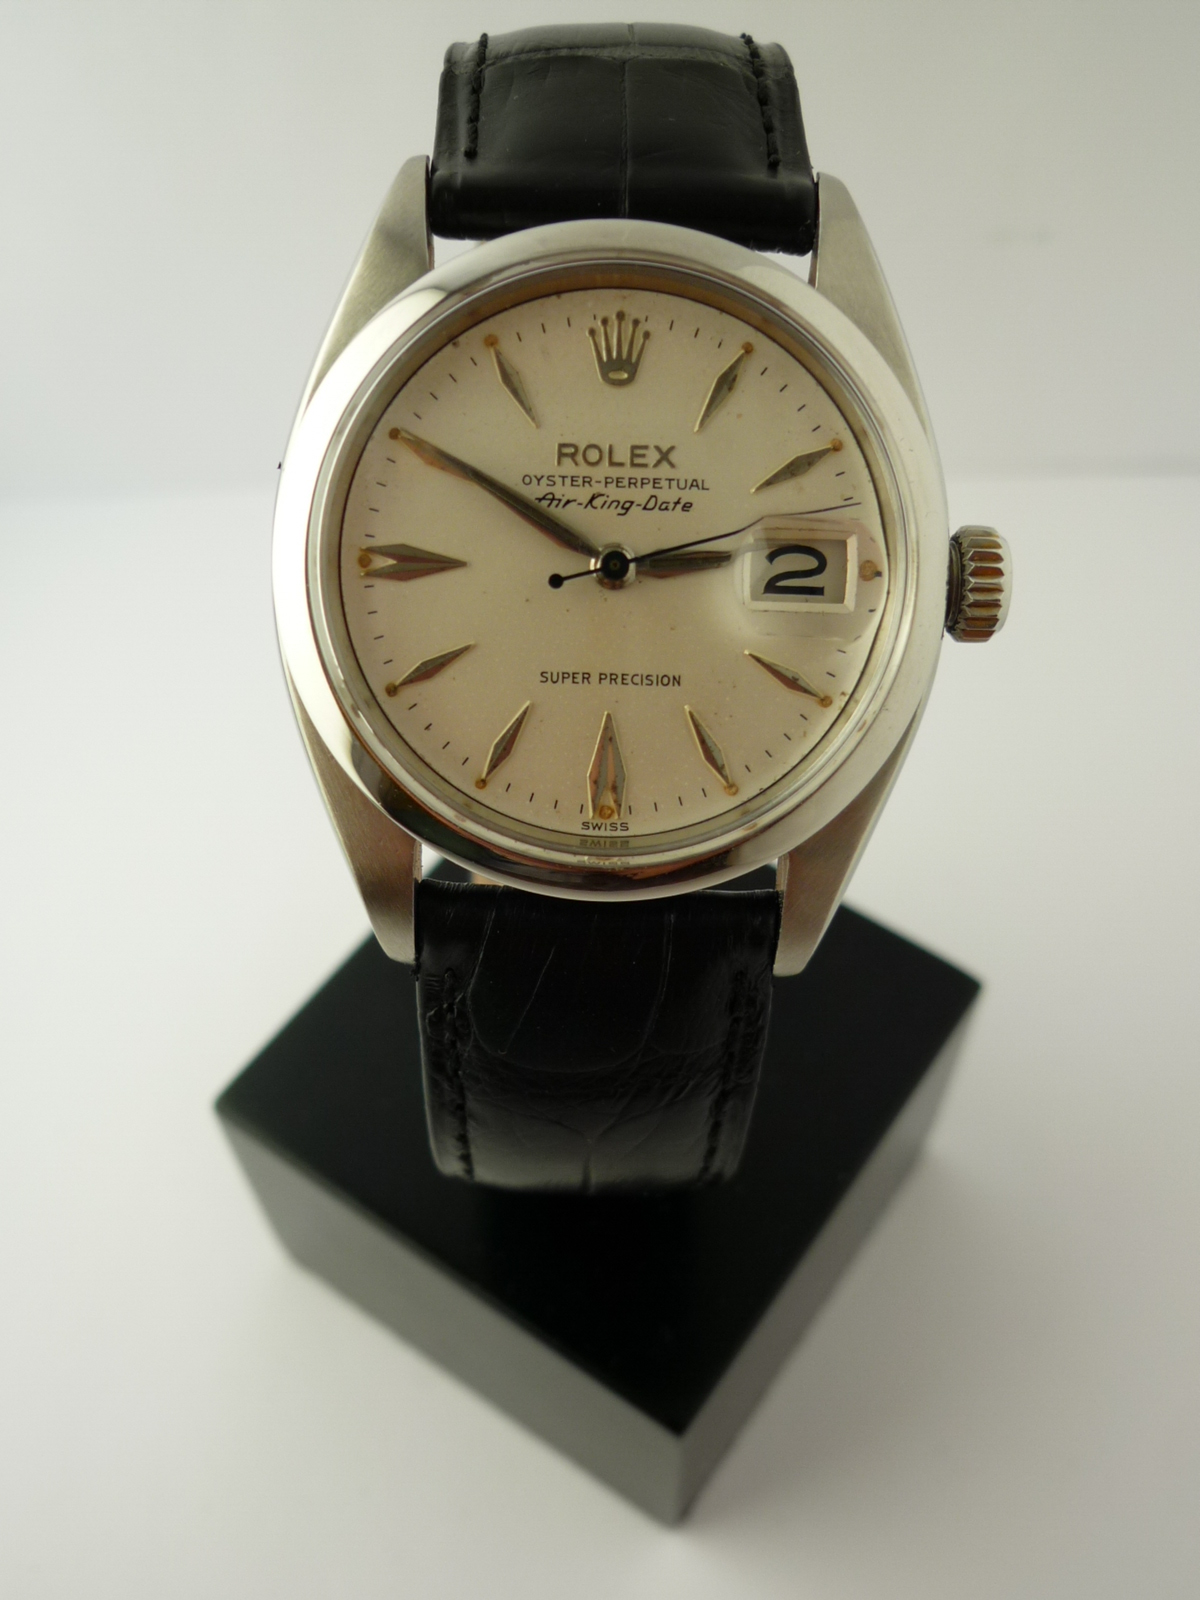 Rolex Oyster Perpetual Air King Date ref 5700 (1960)